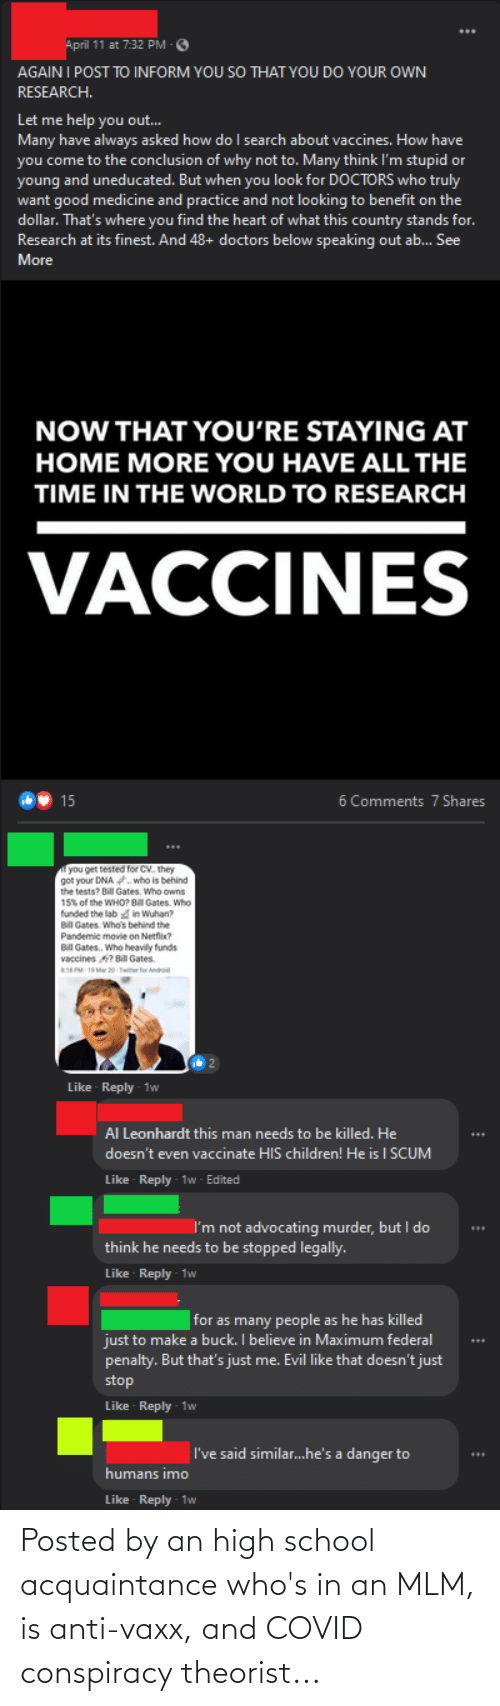 Conspiracy: Posted by an high school acquaintance who's in an MLM, is anti-vaxx, and COVID conspiracy theorist...